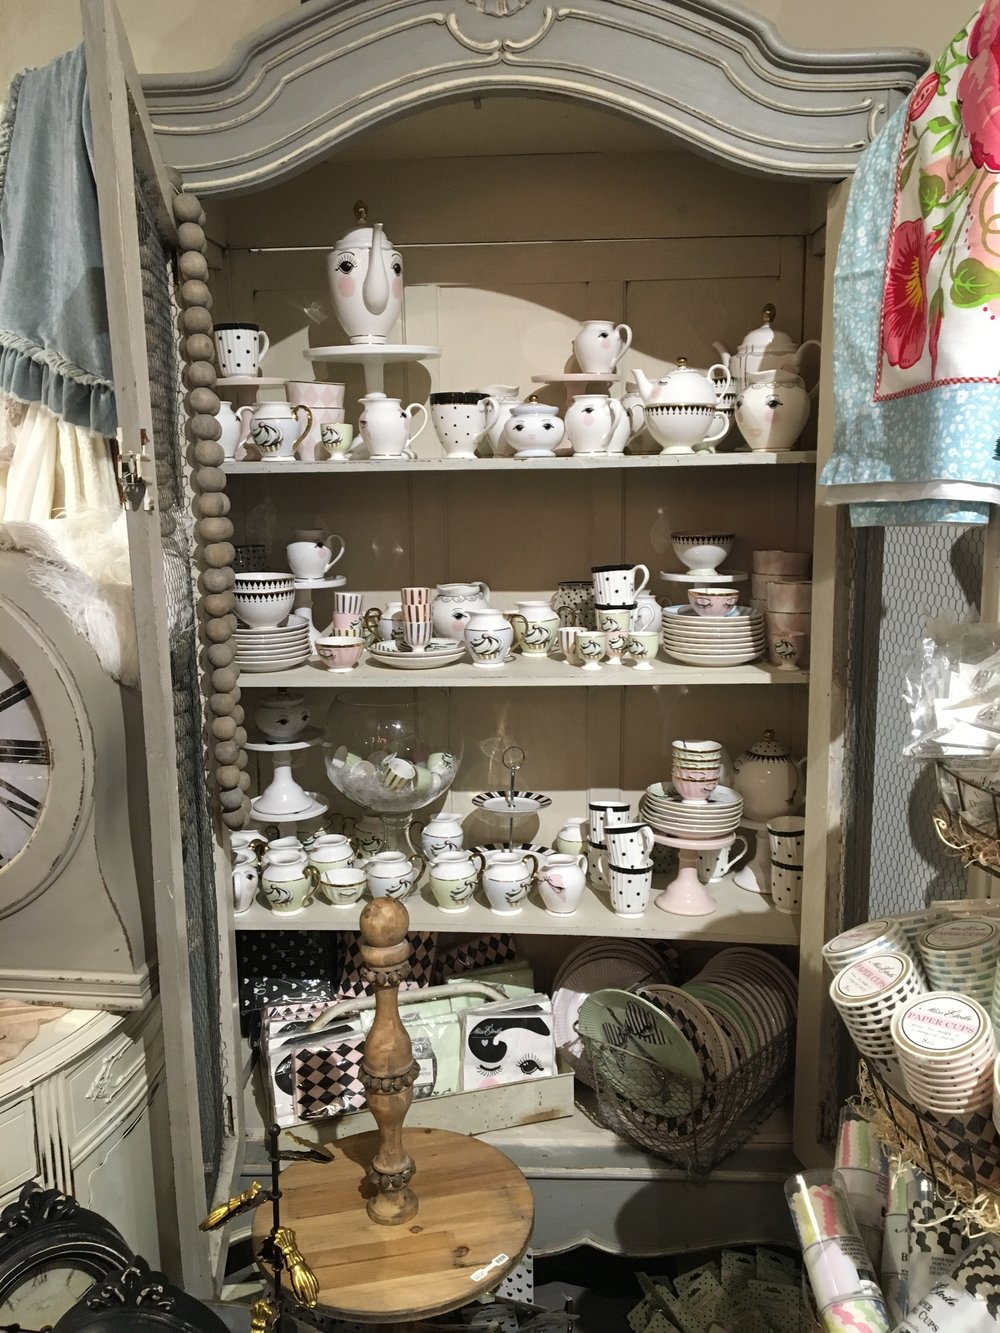 LOVE all these tea sets and platters